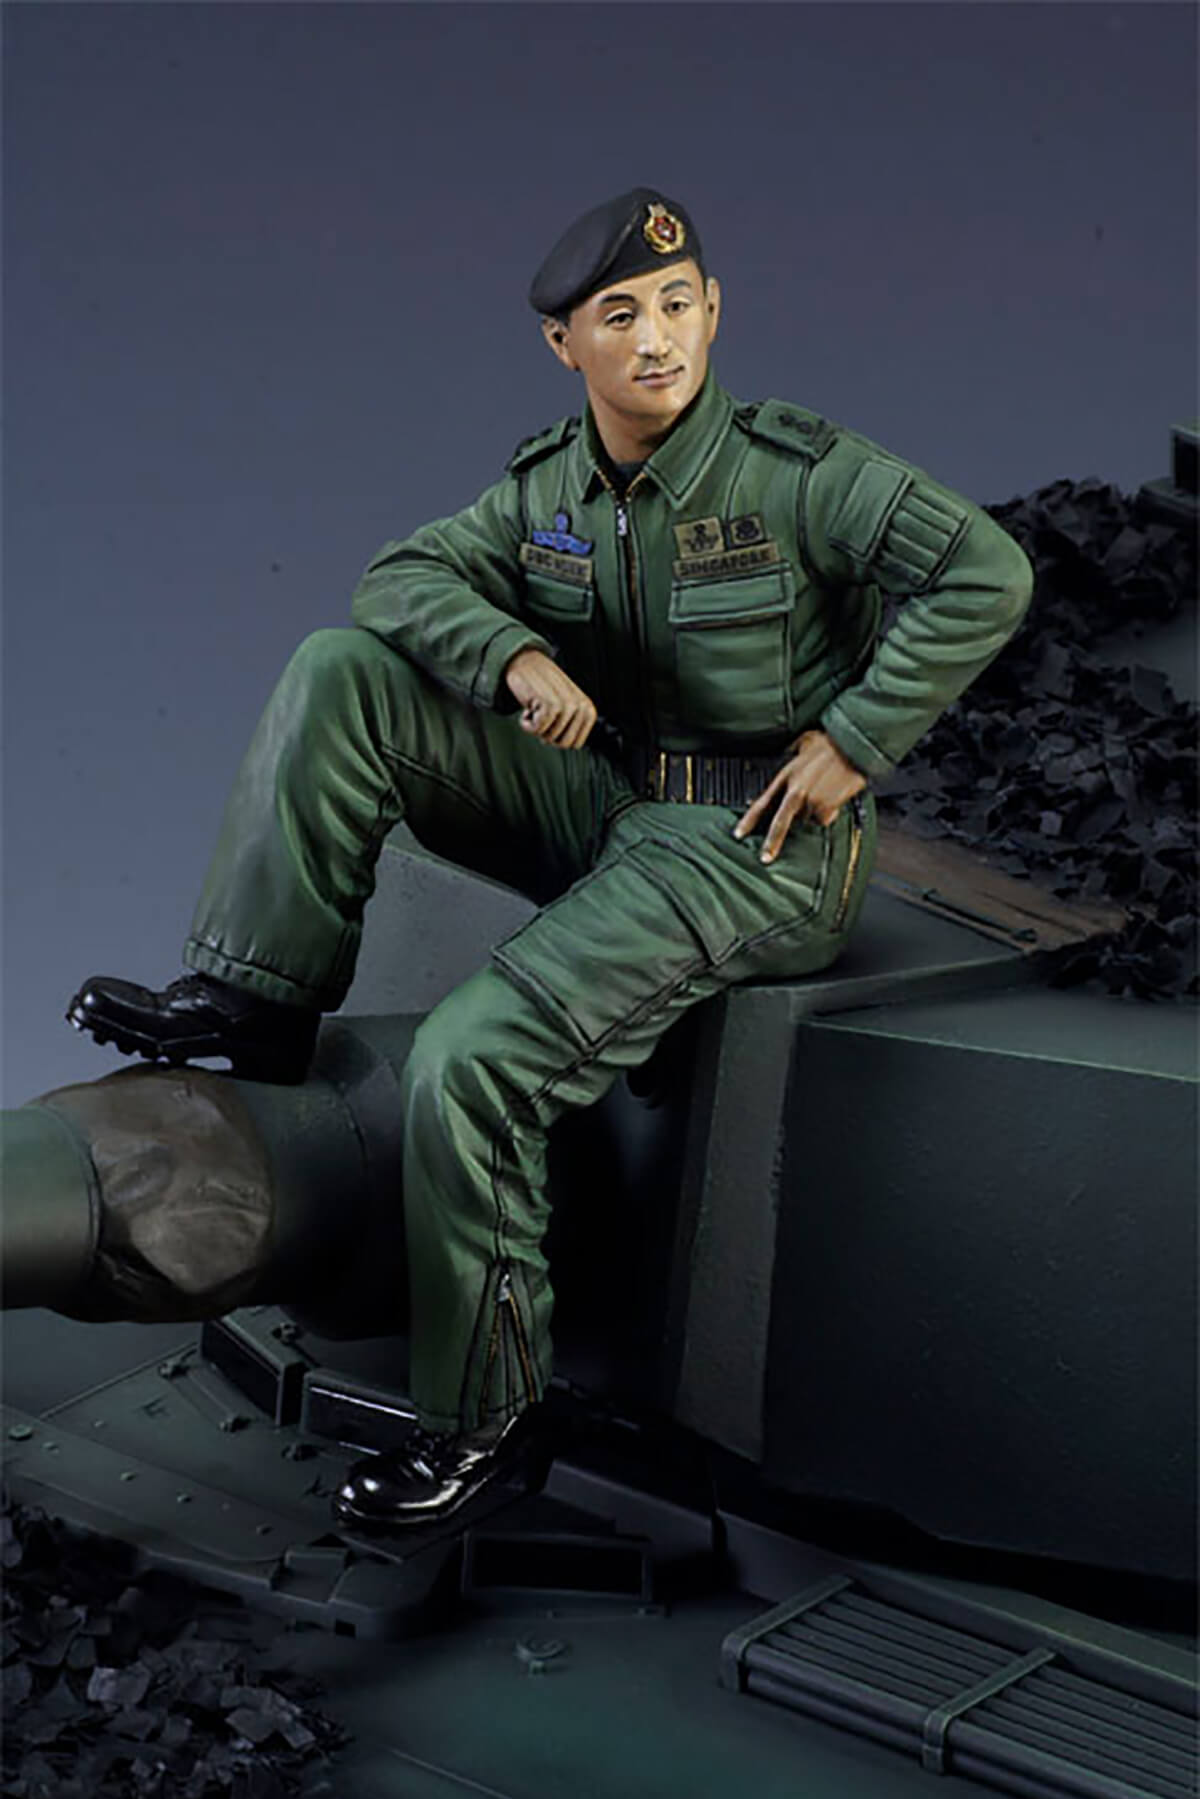 Miniature portrait of Singapore Army Major General Desmond Kuek created by DigiPen (Singapore) faculty member Calvin Tan